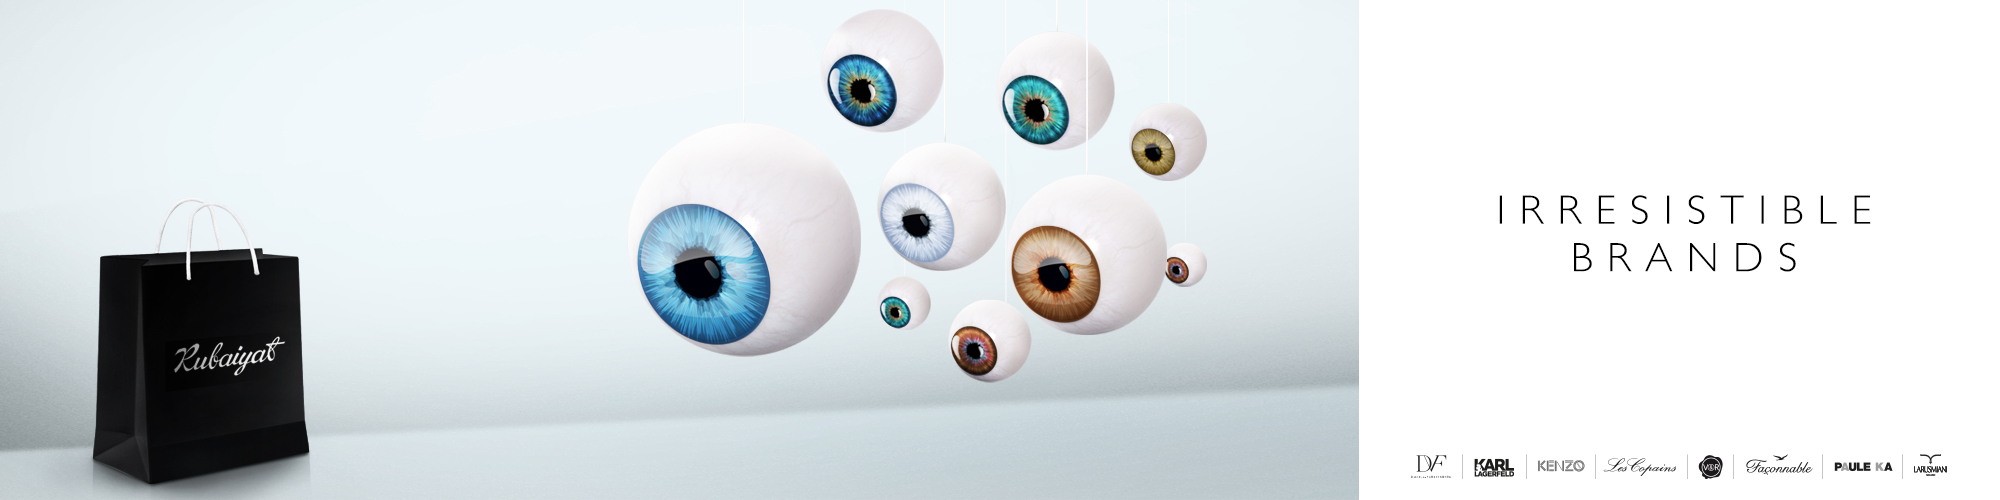 WEB-Banner-2000x500eyeball